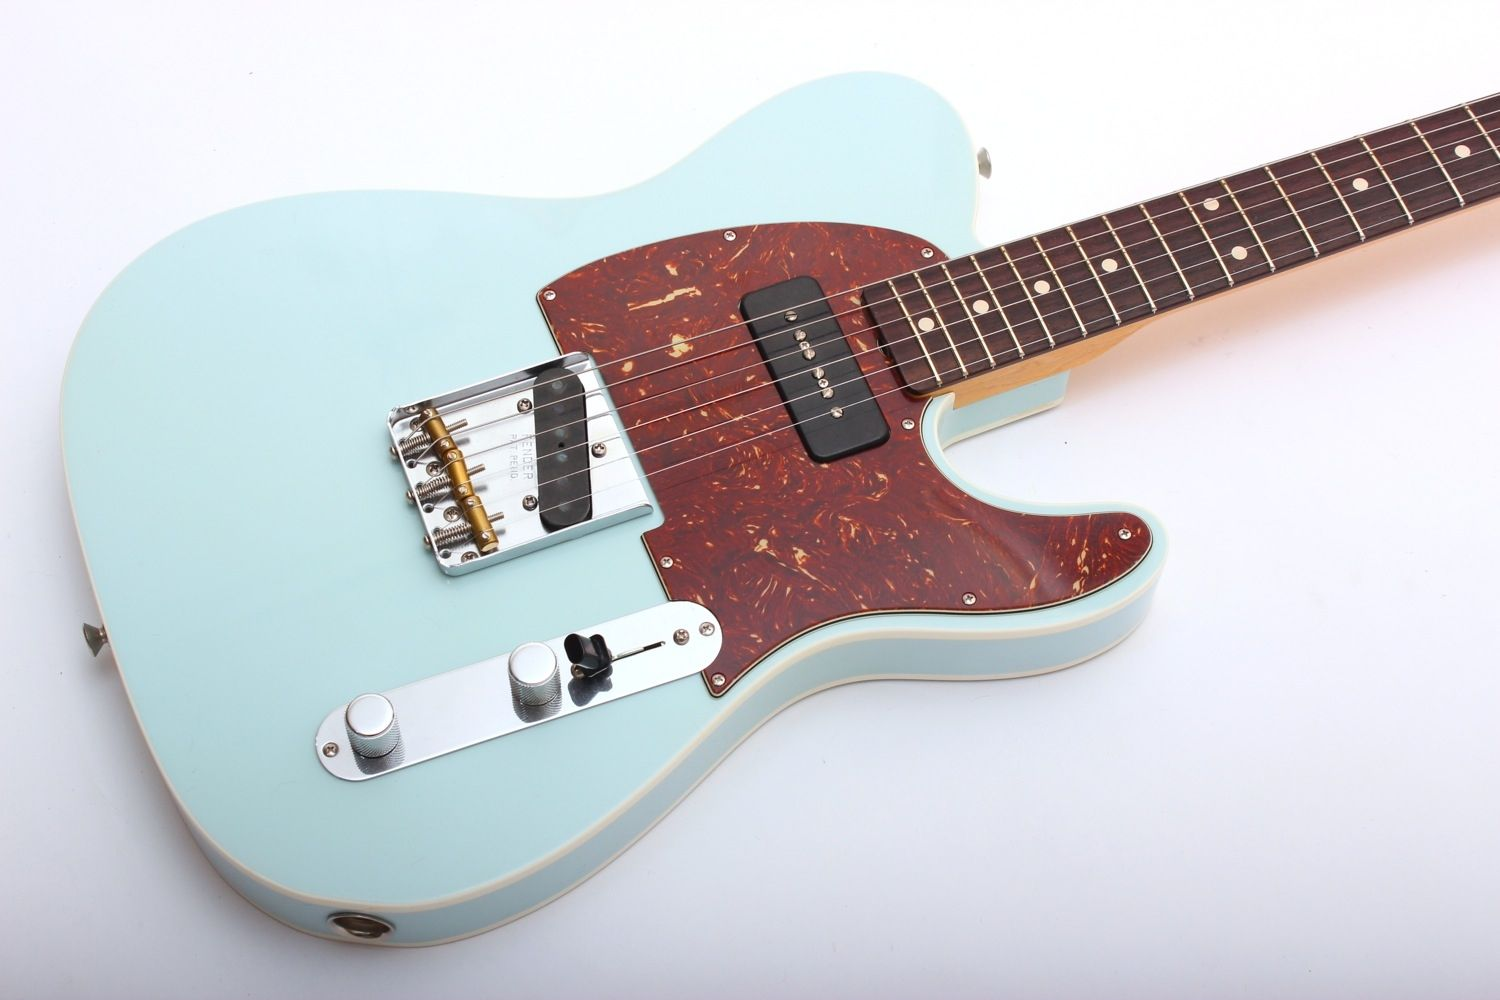 Fender Custom Shop 60 Telecaster With P 90 Closet Classic Faded Toronado Wiring Diagram Buy Sonic Blue Online From Gakcouk Unbeatable Prices And Next Day Delivery The